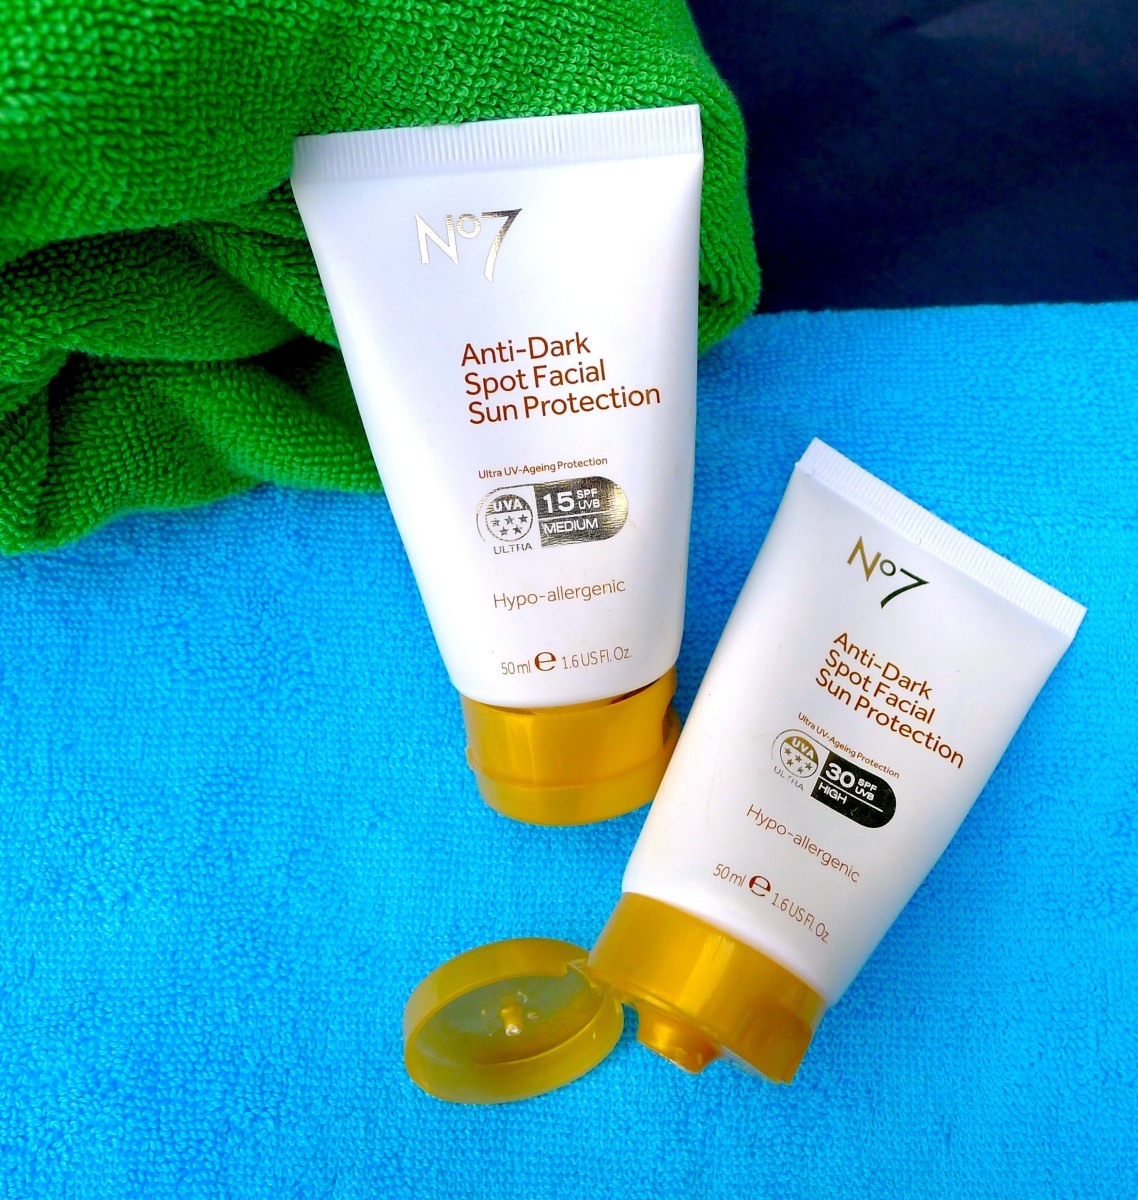 September Sun - Boots No7 Anti-Dark Spot Facial Sun Protection